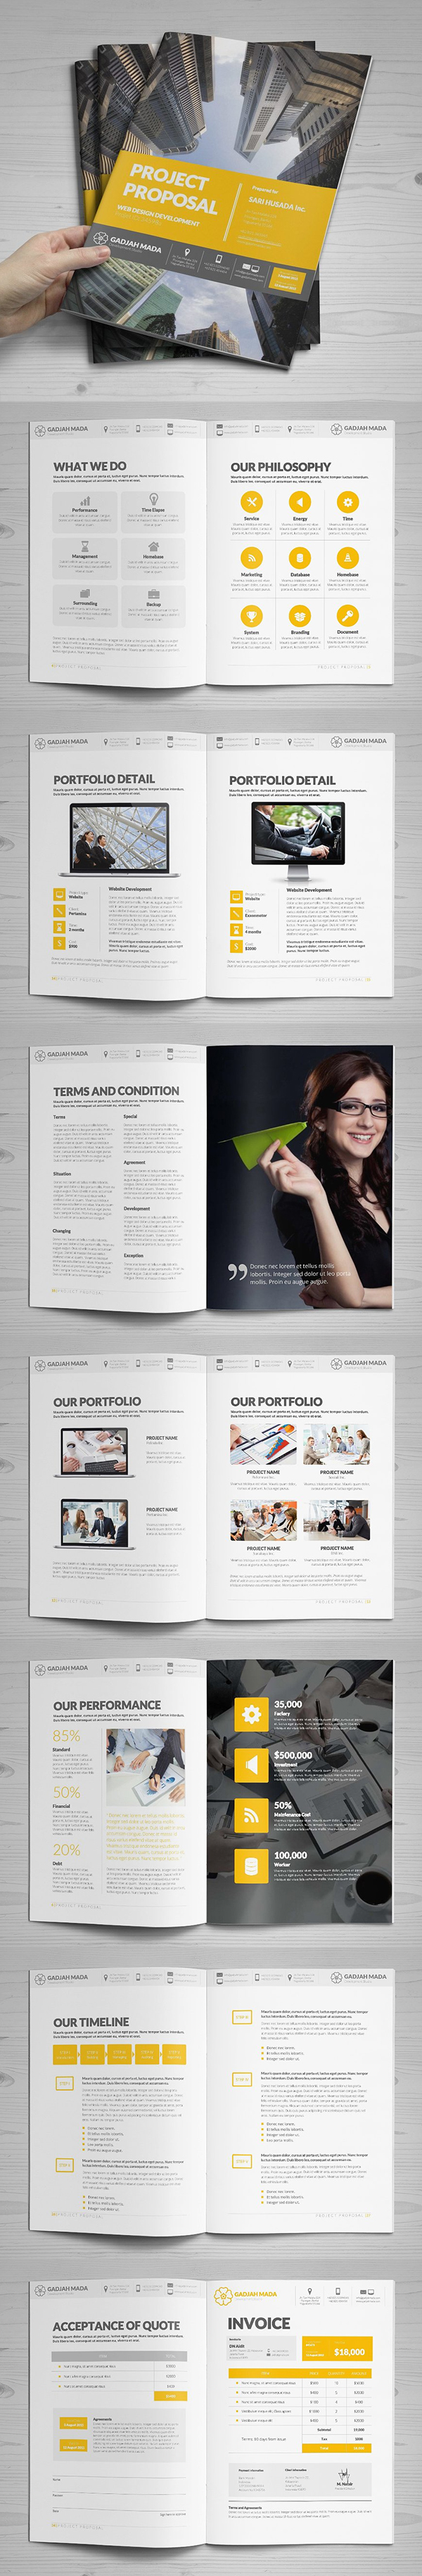 100 Professional Corporate Brochure Templates - 92